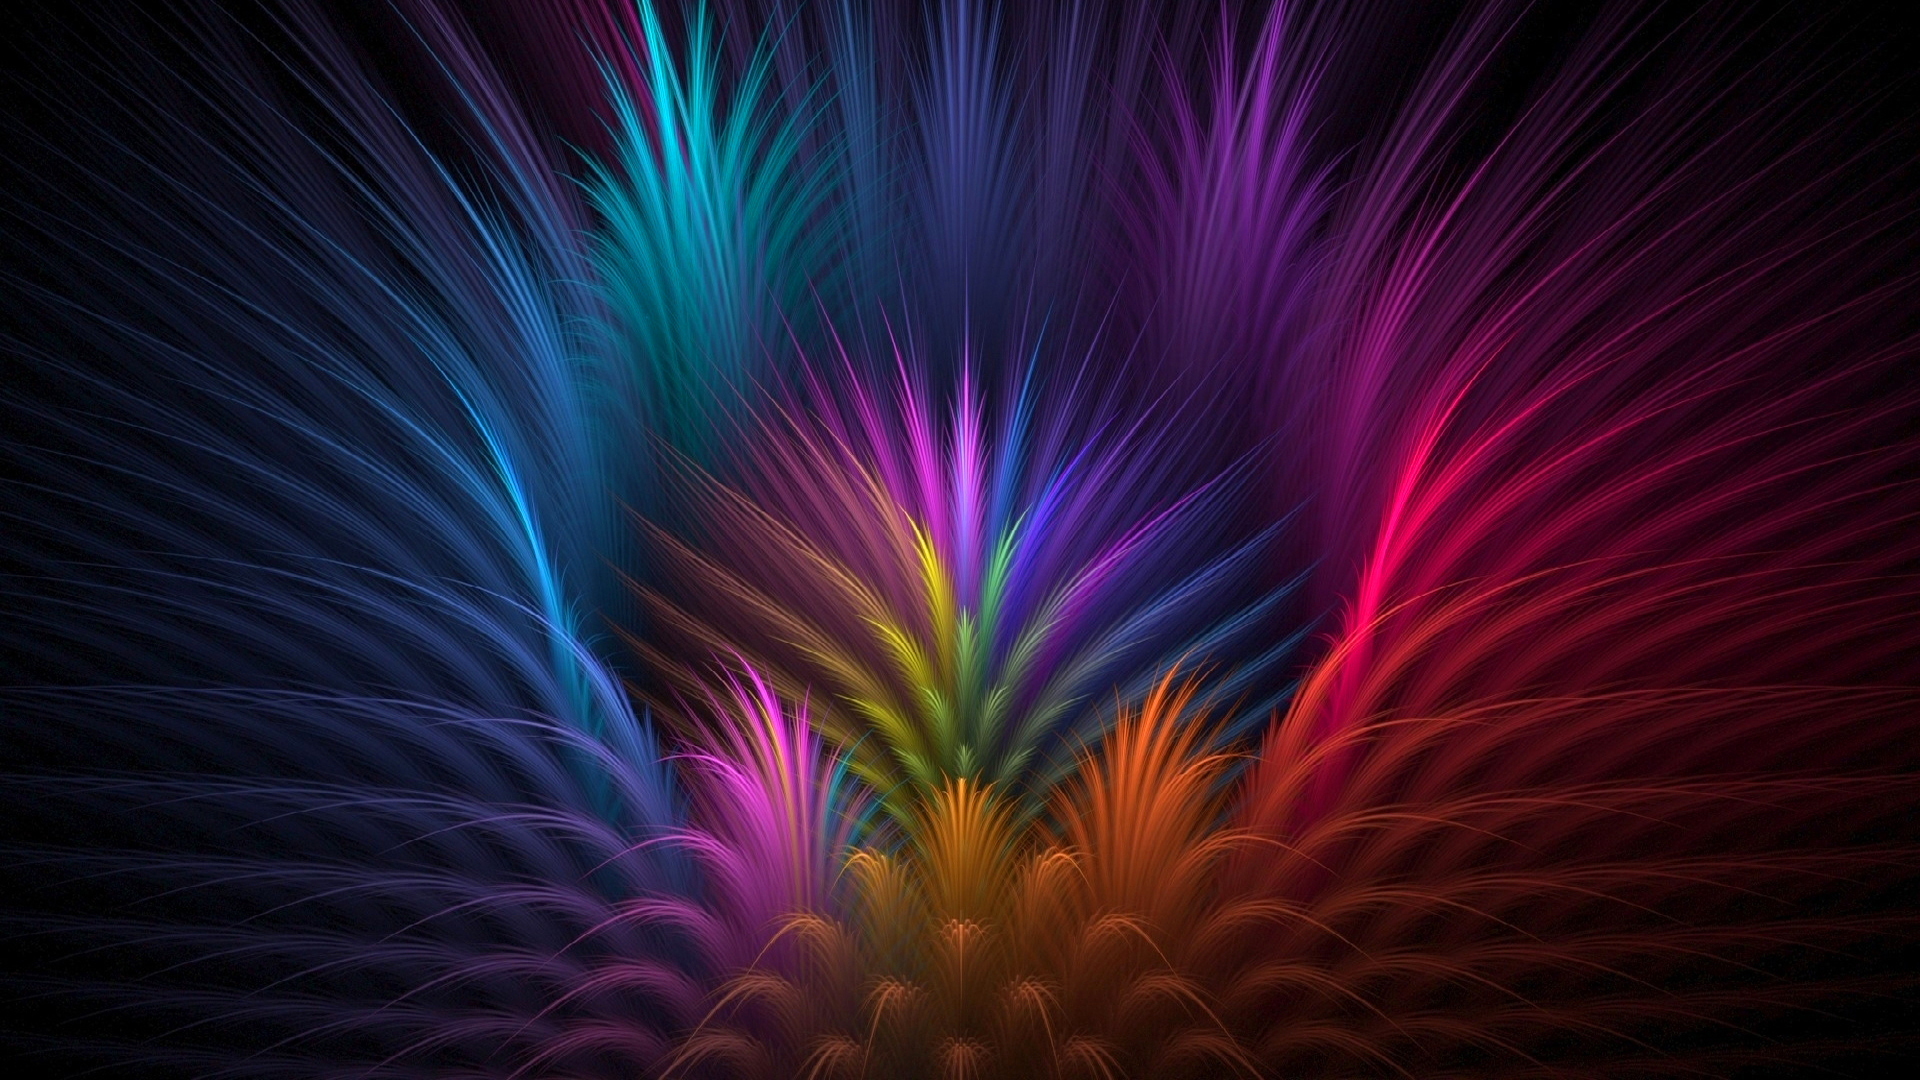 abstract colored rays symmetry feather art background wallpaper 1920x1080